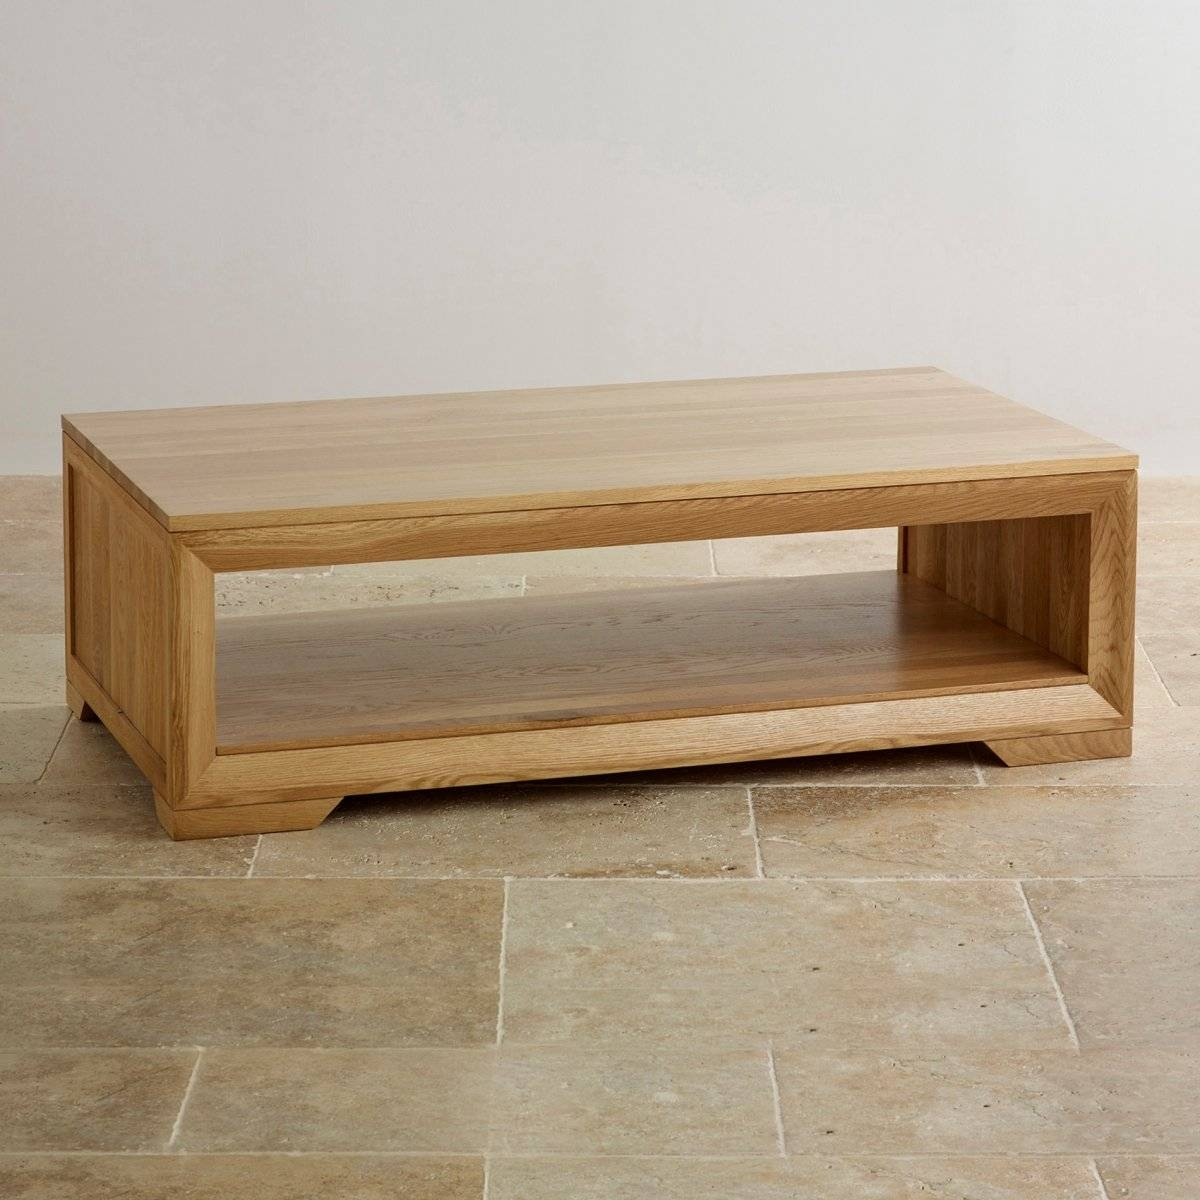 Bevel Coffee Table In Solid Oak | Oak Furniture Land inside Oak Wood Coffee Tables (Image 3 of 15)